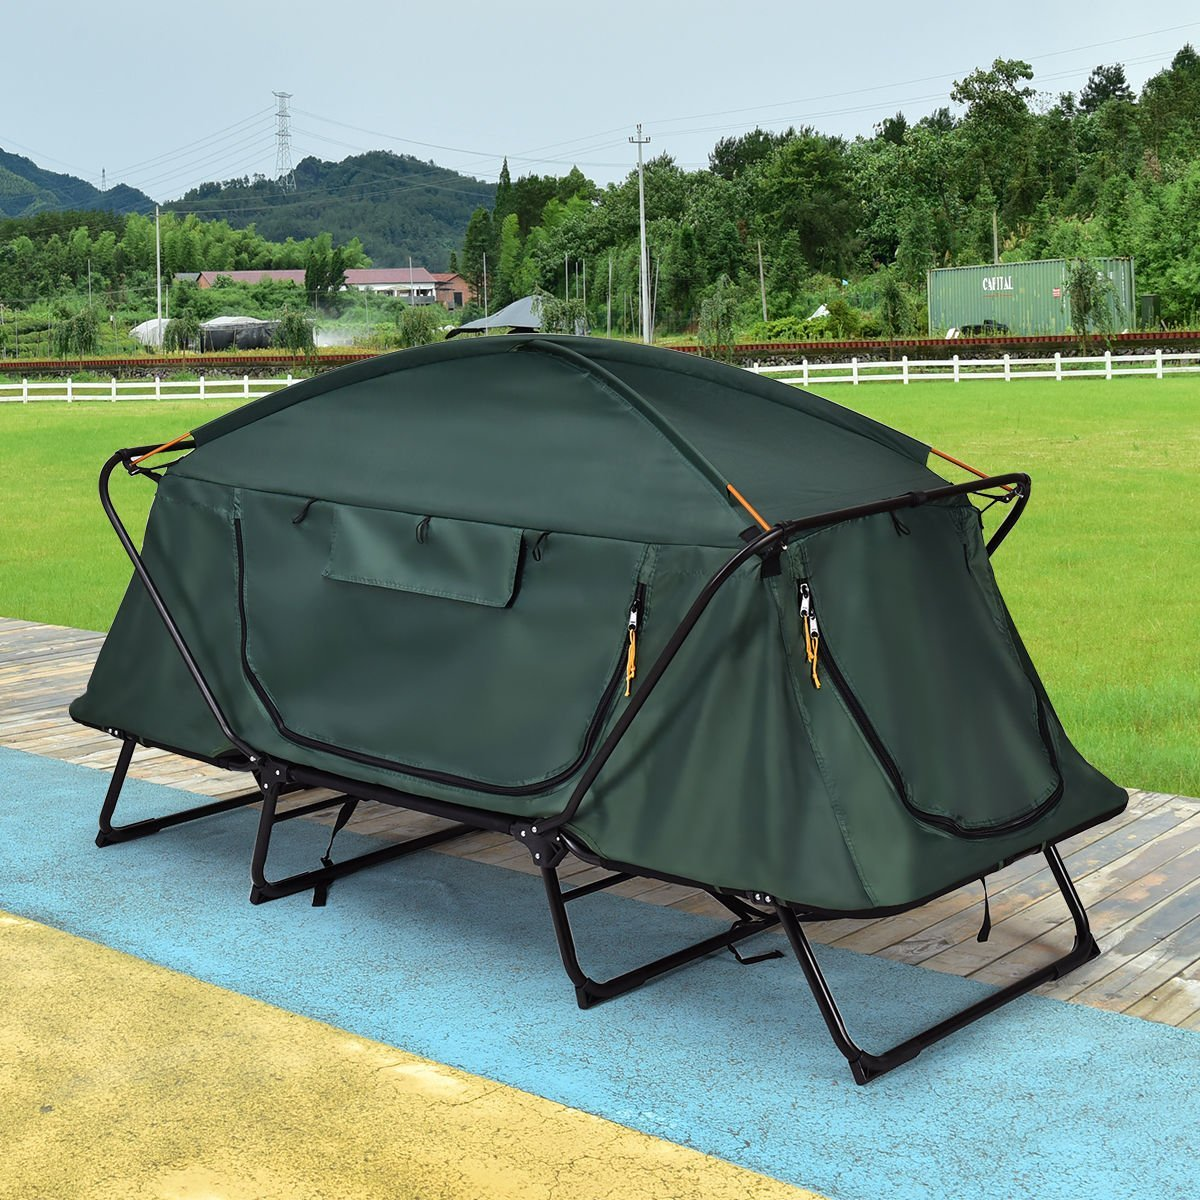 3 best cot tents for camping solo 3 warm off ground tent options